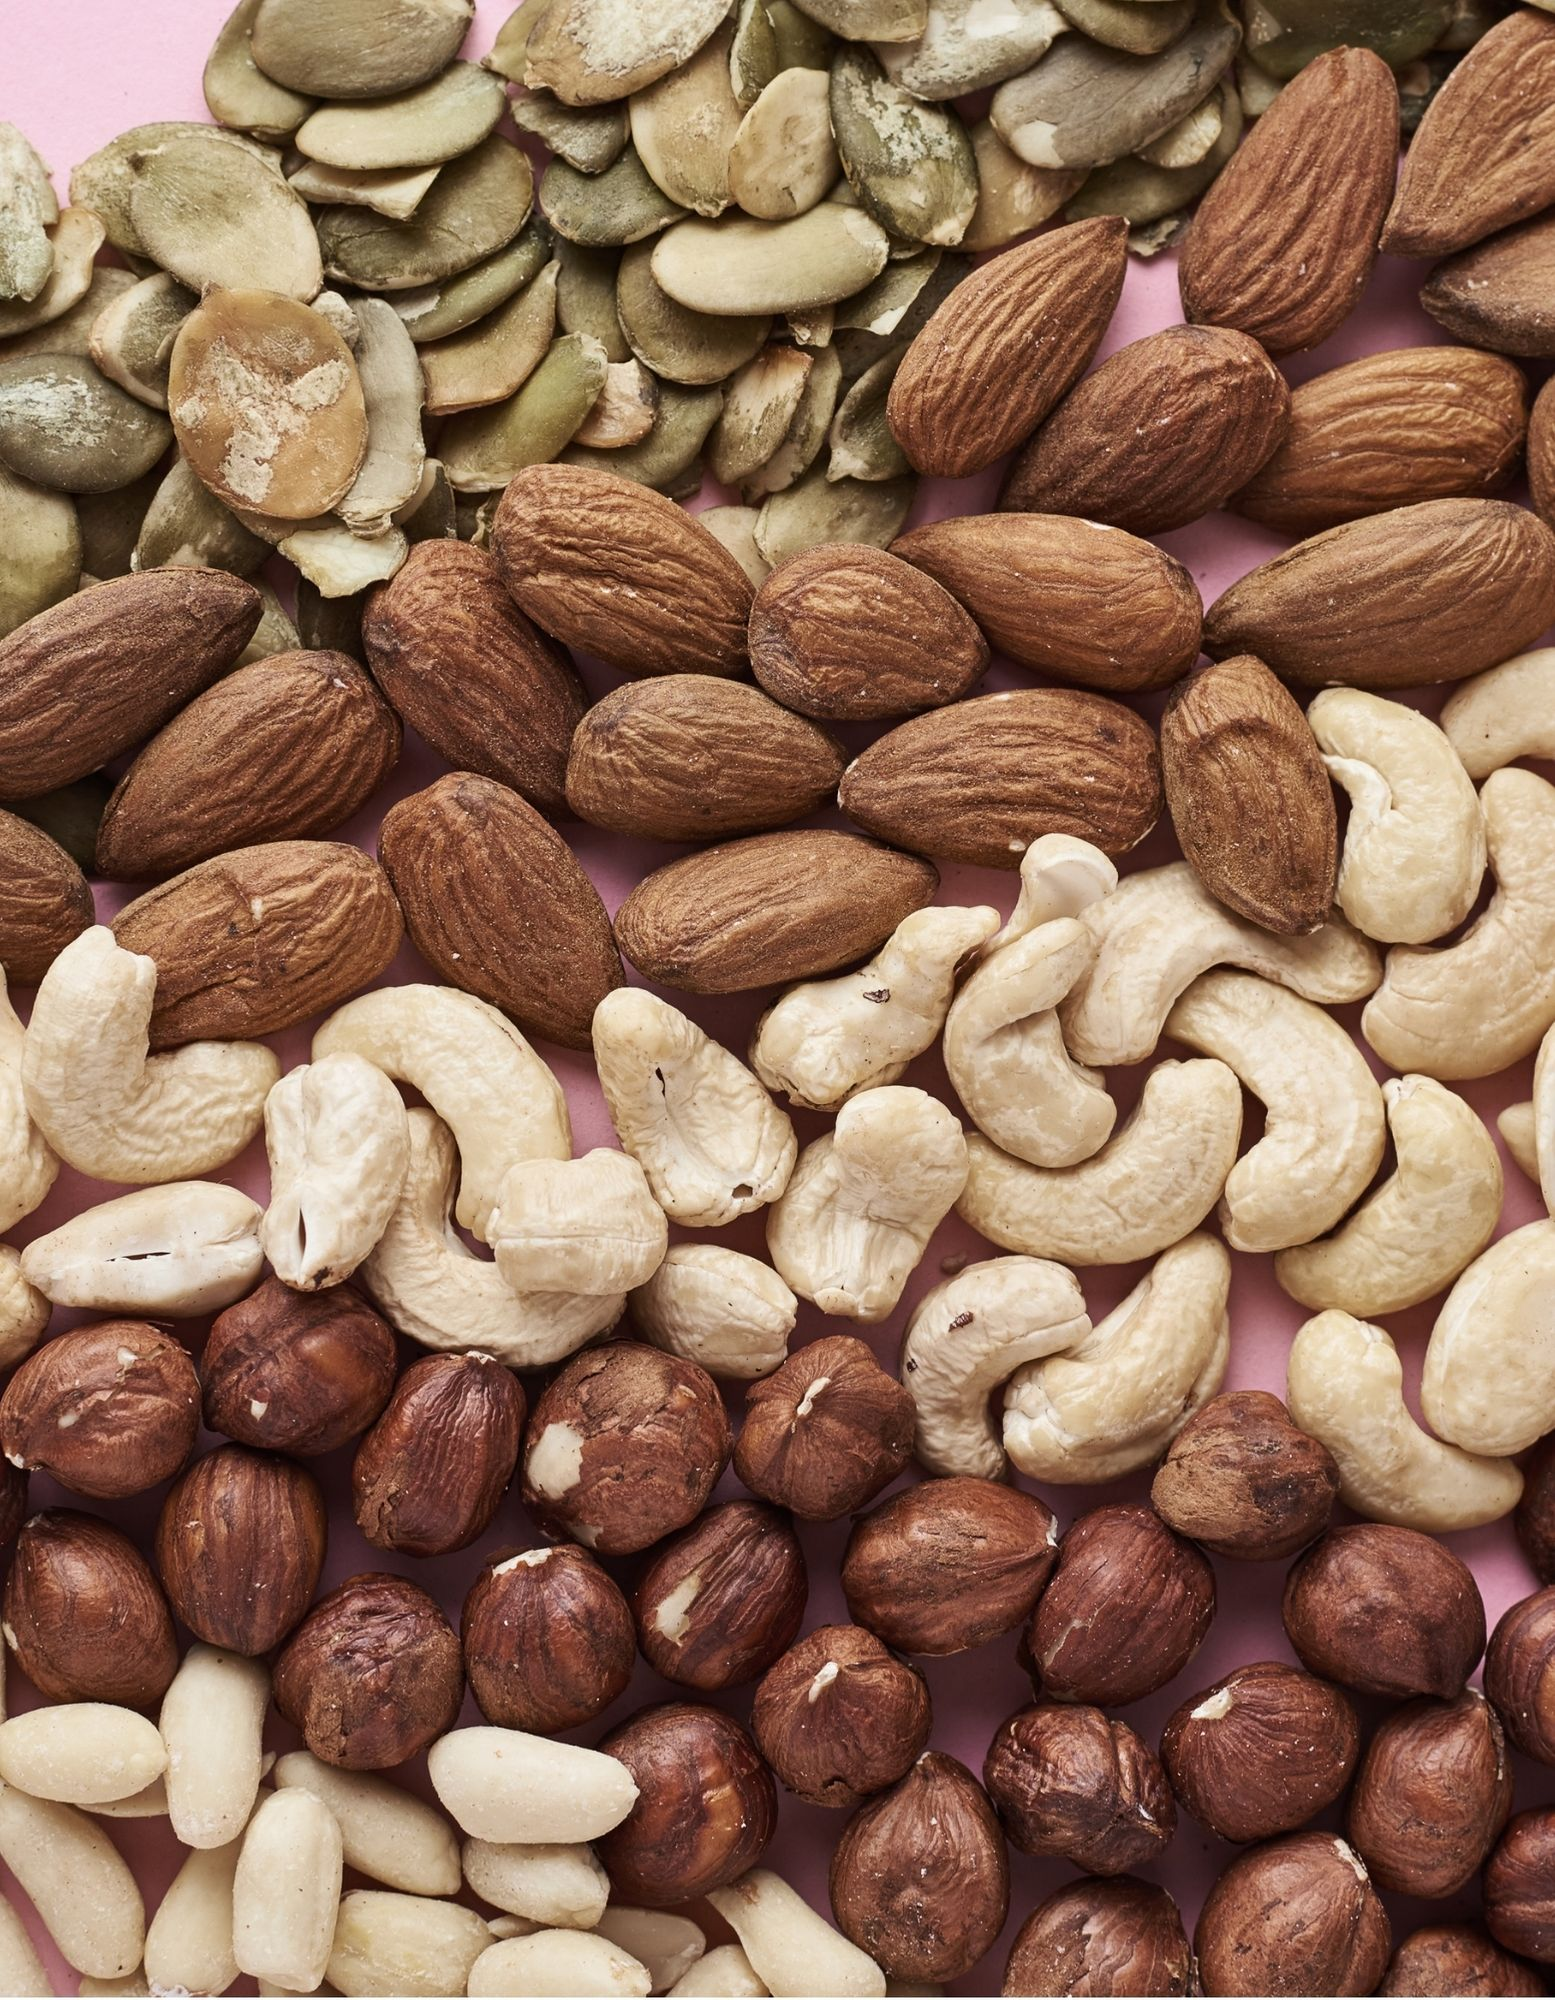 8 Foods That Help Fight Muscle Cramps